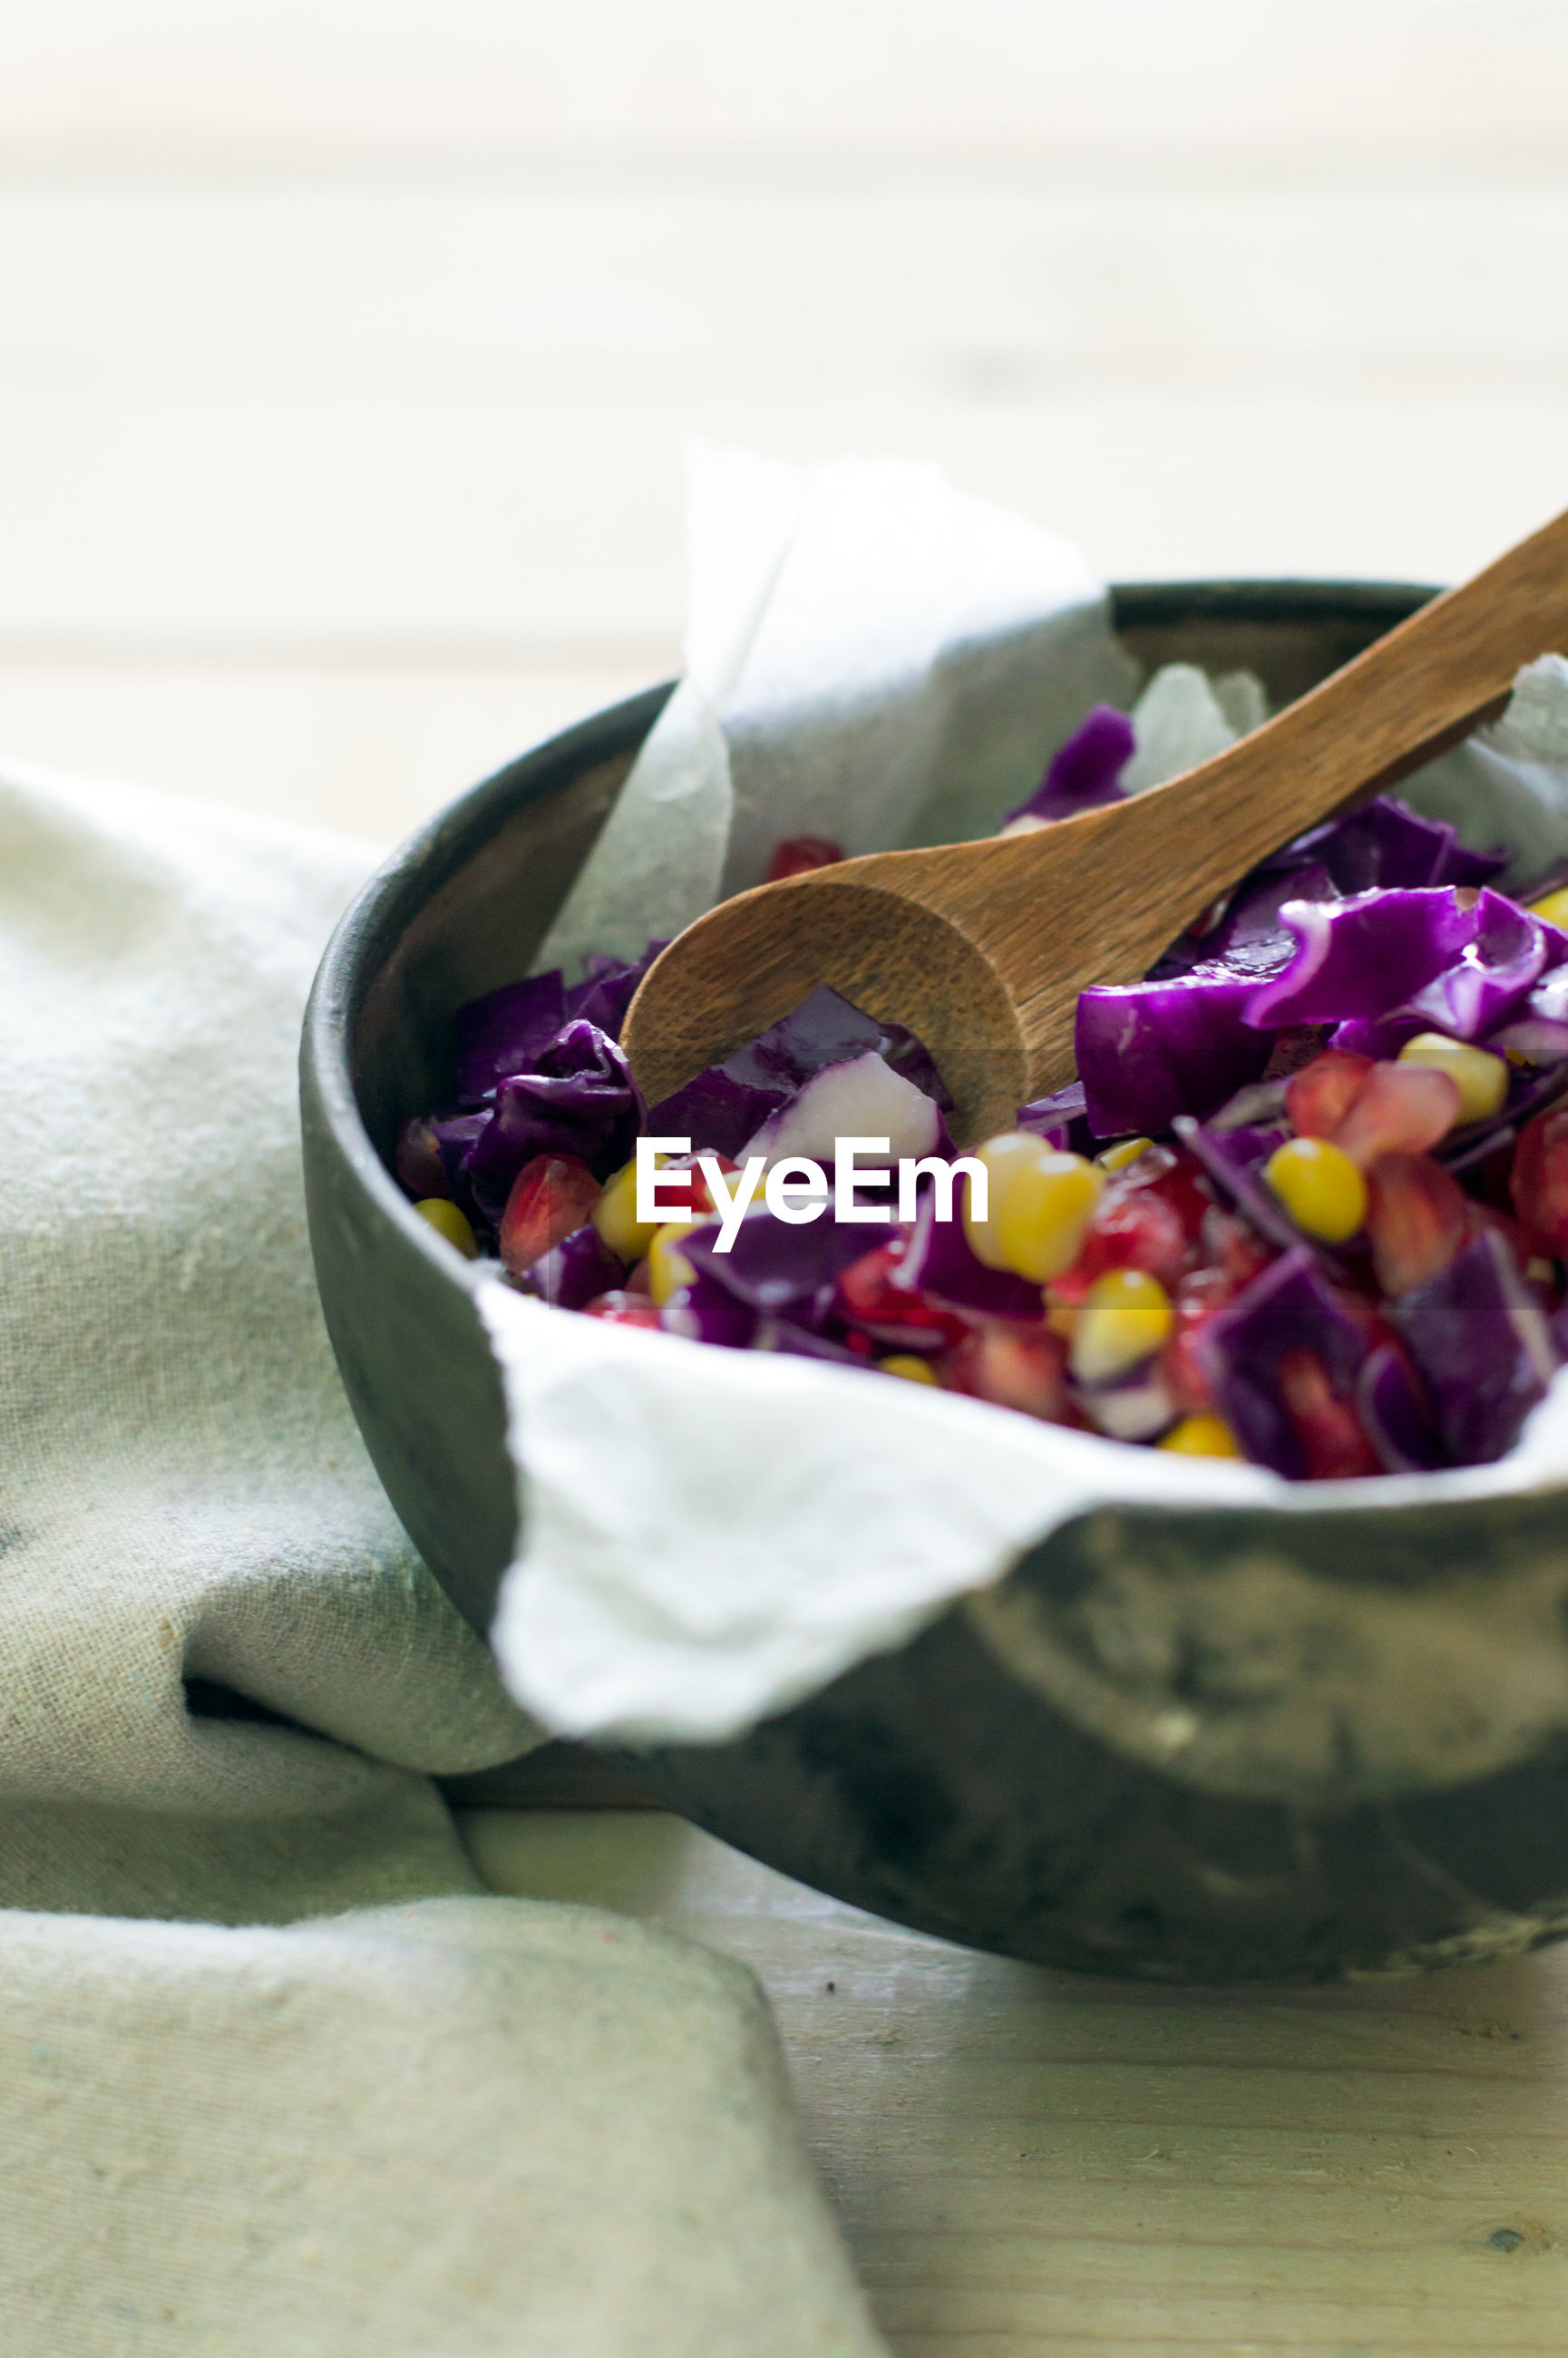 CLOSE-UP OF PURPLE FLOWERS IN BOWL